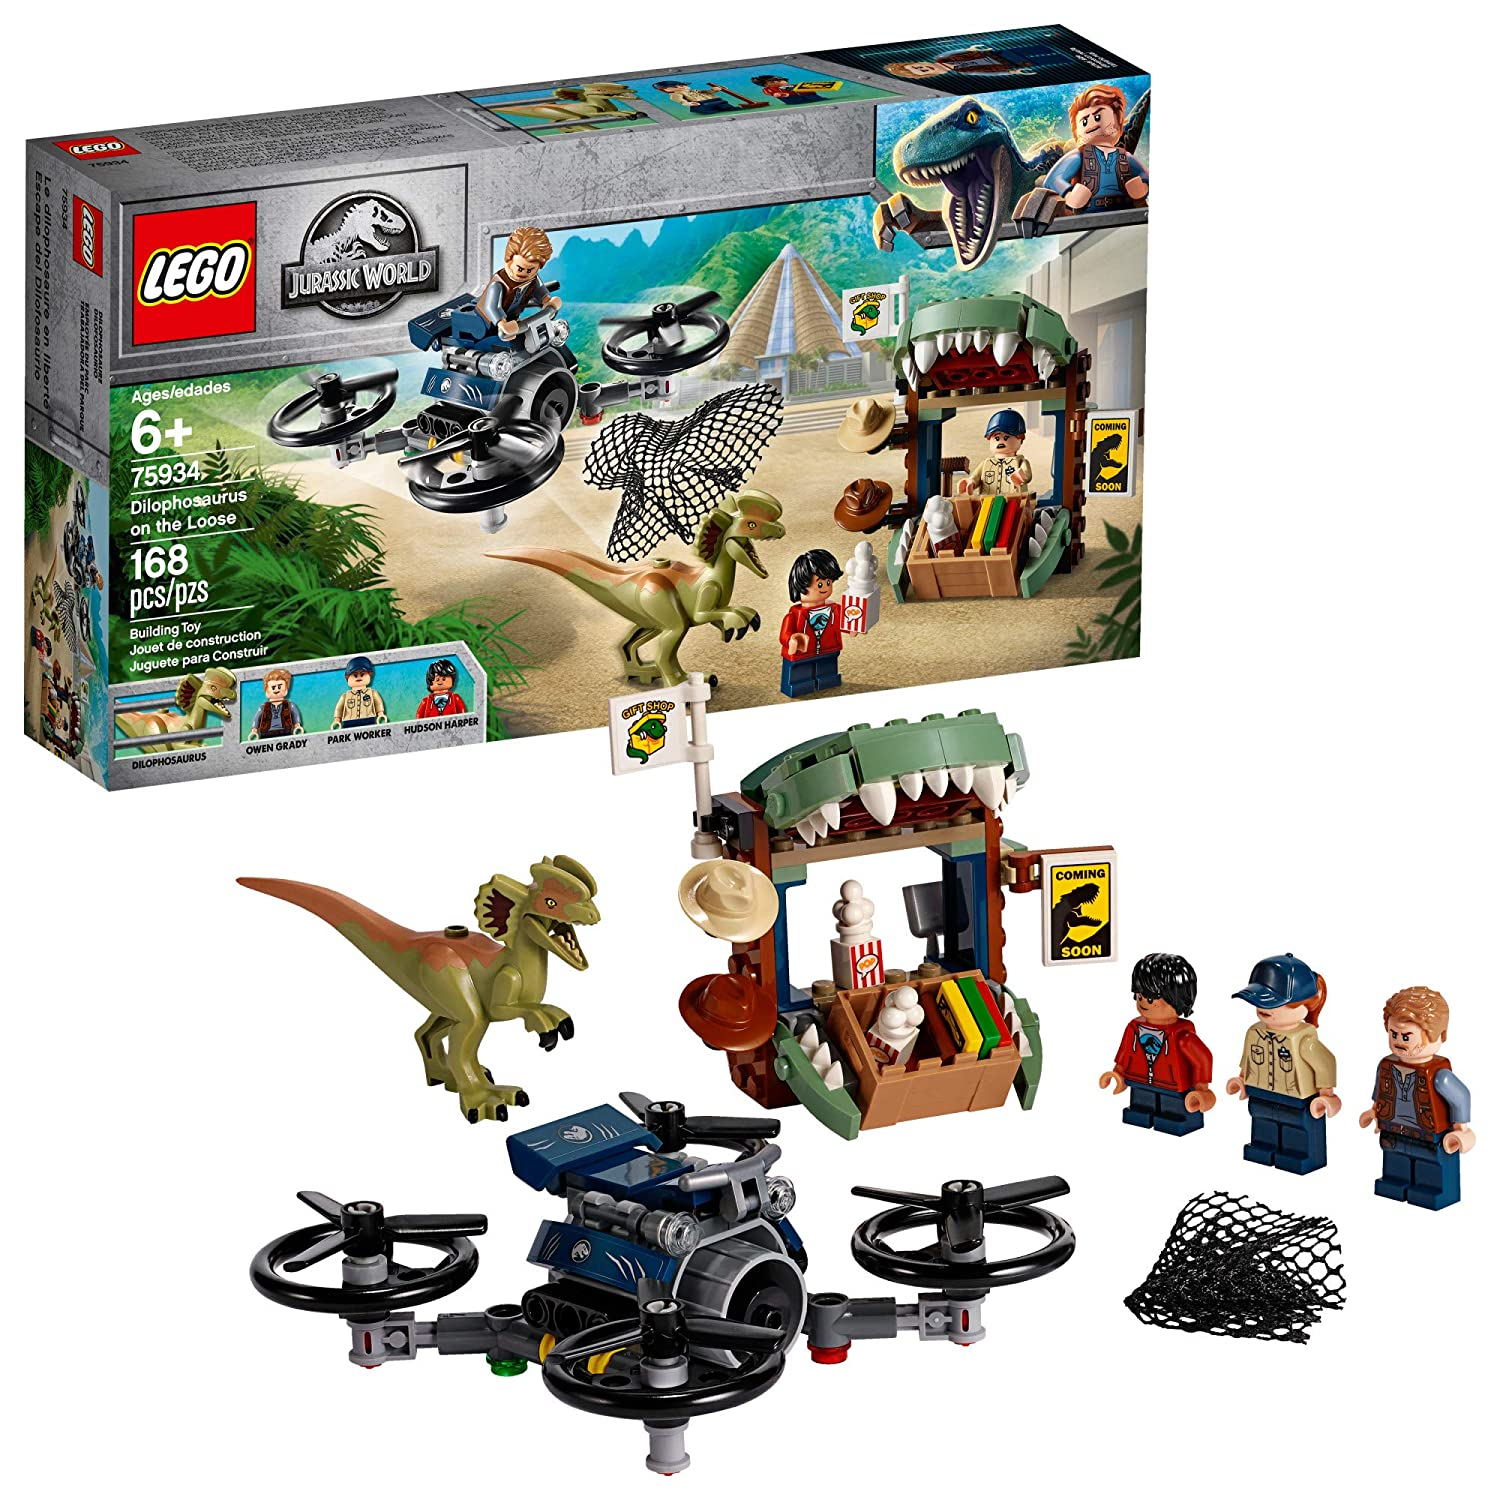 Top 8 Best Lego Dinosaurs Set Reviews in 2020 3